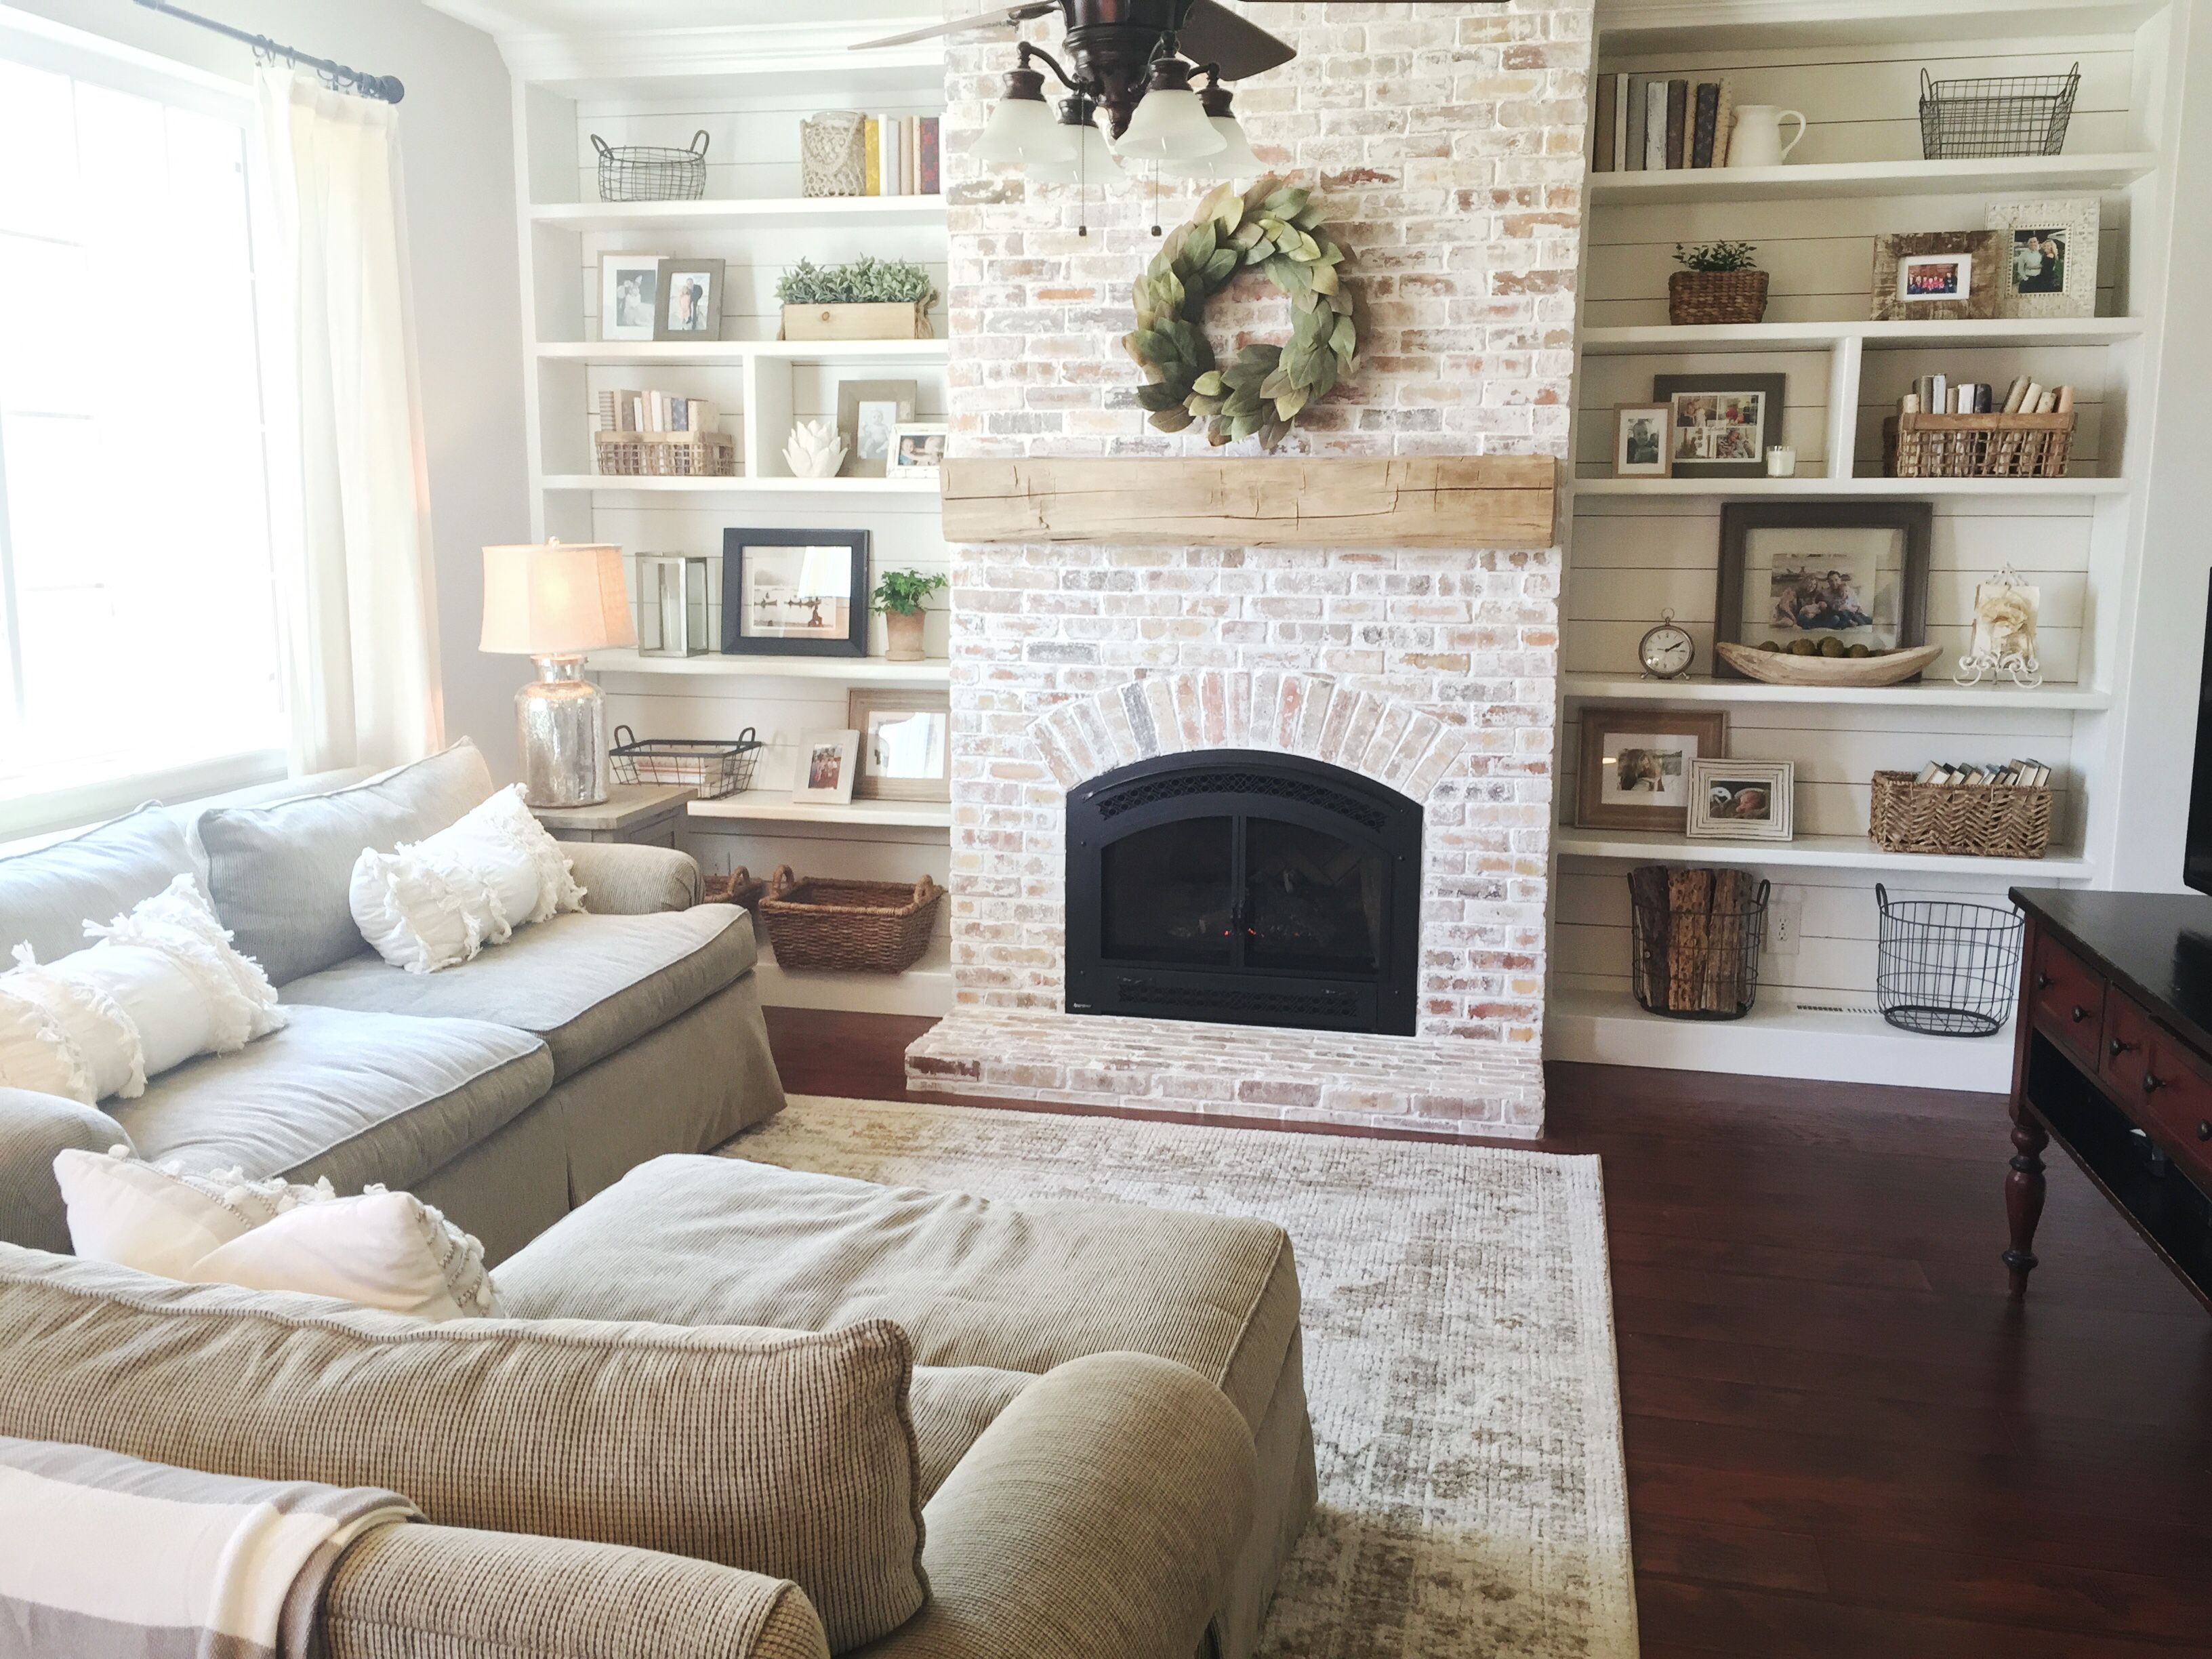 What to Put In An Empty Fireplace Awesome Built Ins Shiplap Whitewash Brick Fireplace Bookshelf